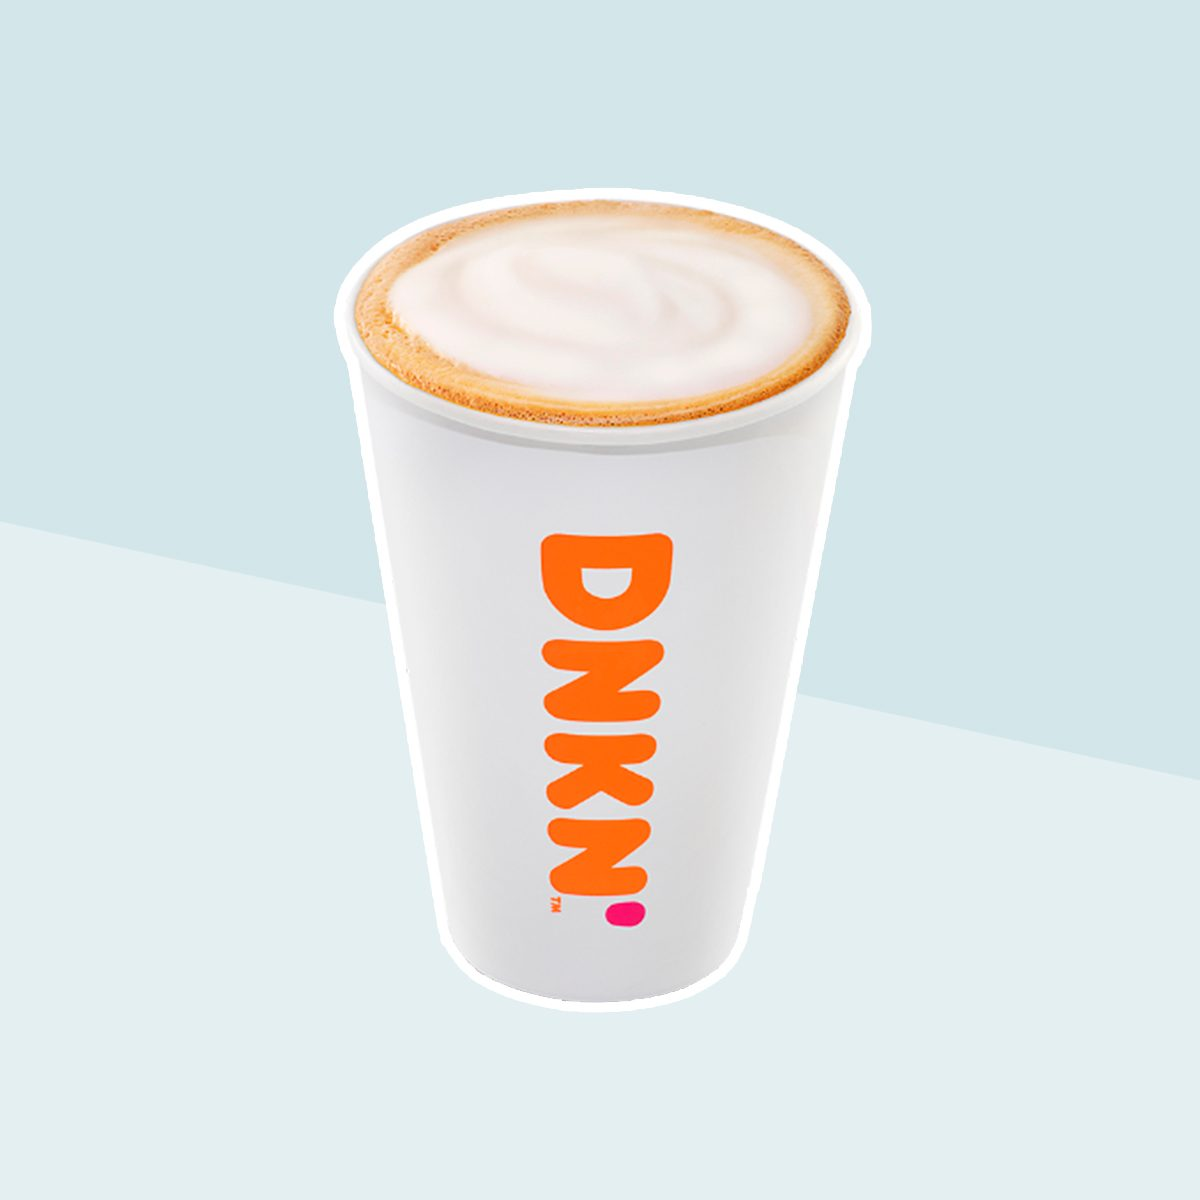 CAPPUCCINO with skim milk from Dunkin' Donuts